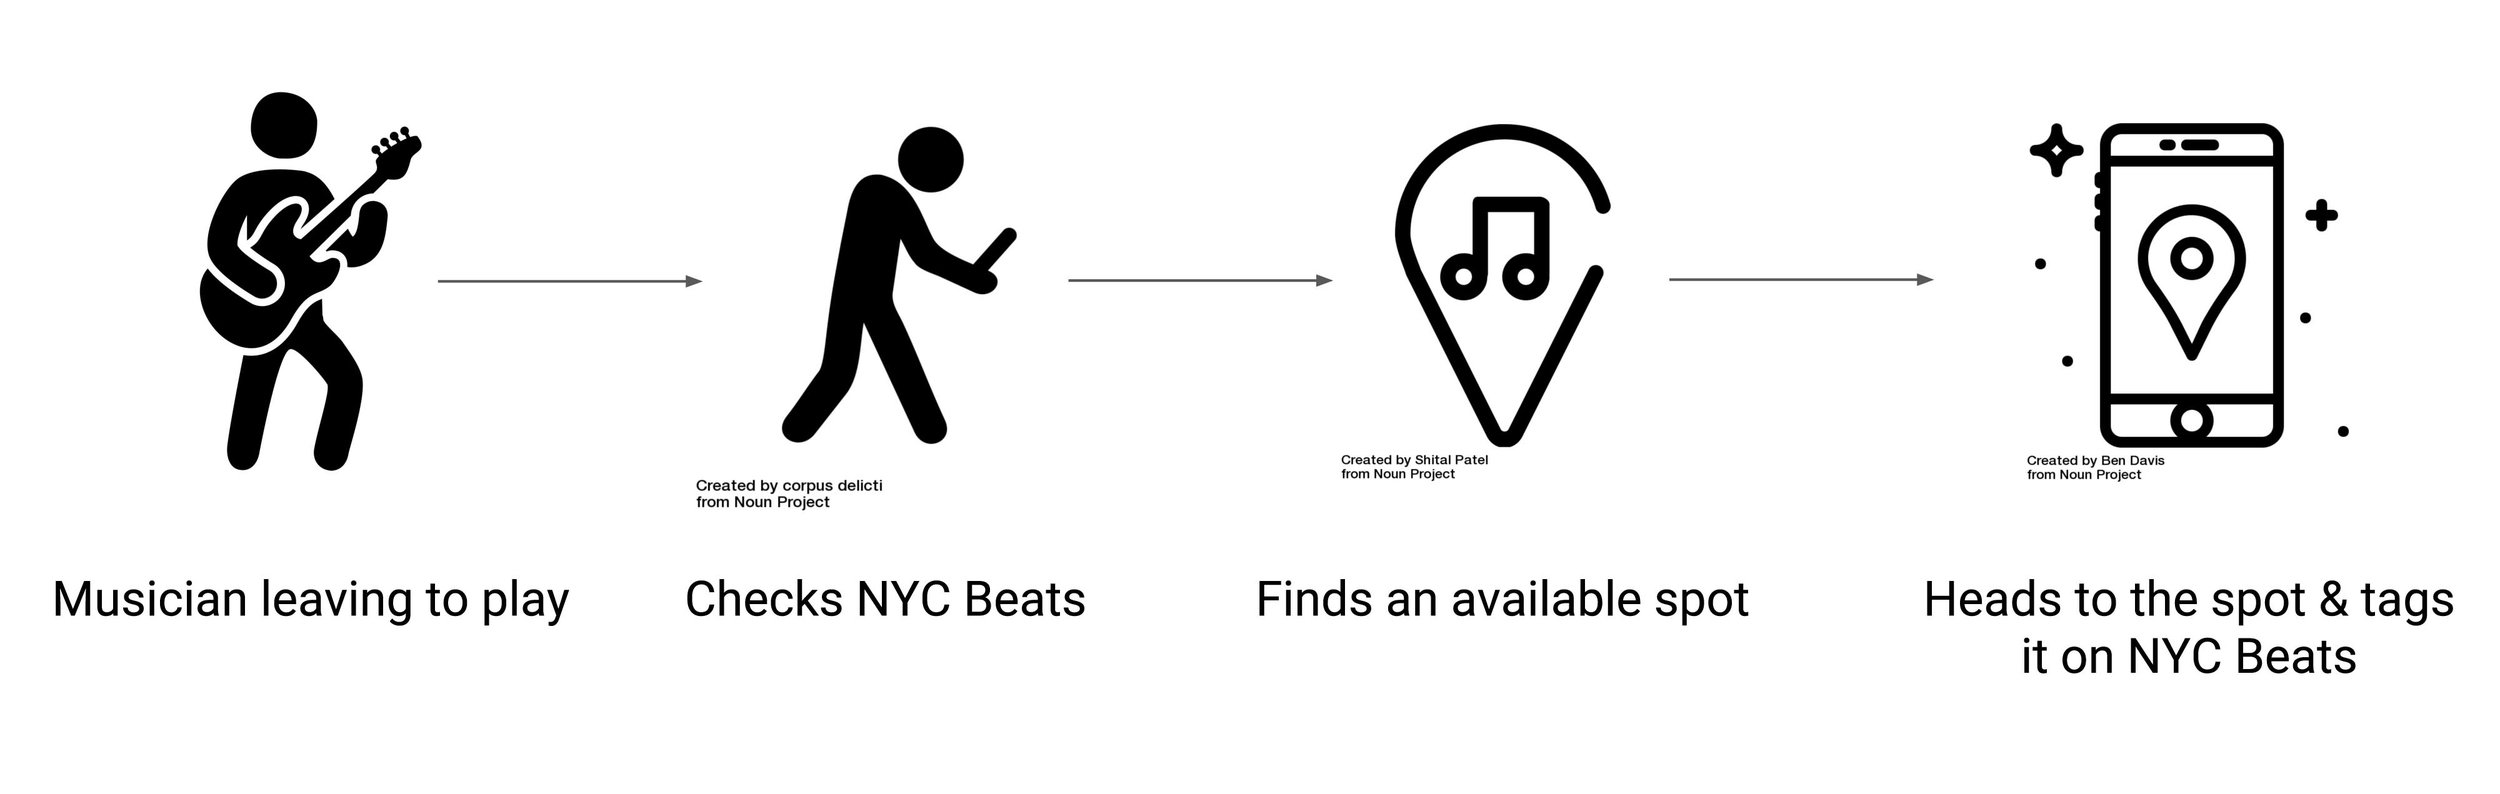 User journey of a musician using NYC Beats